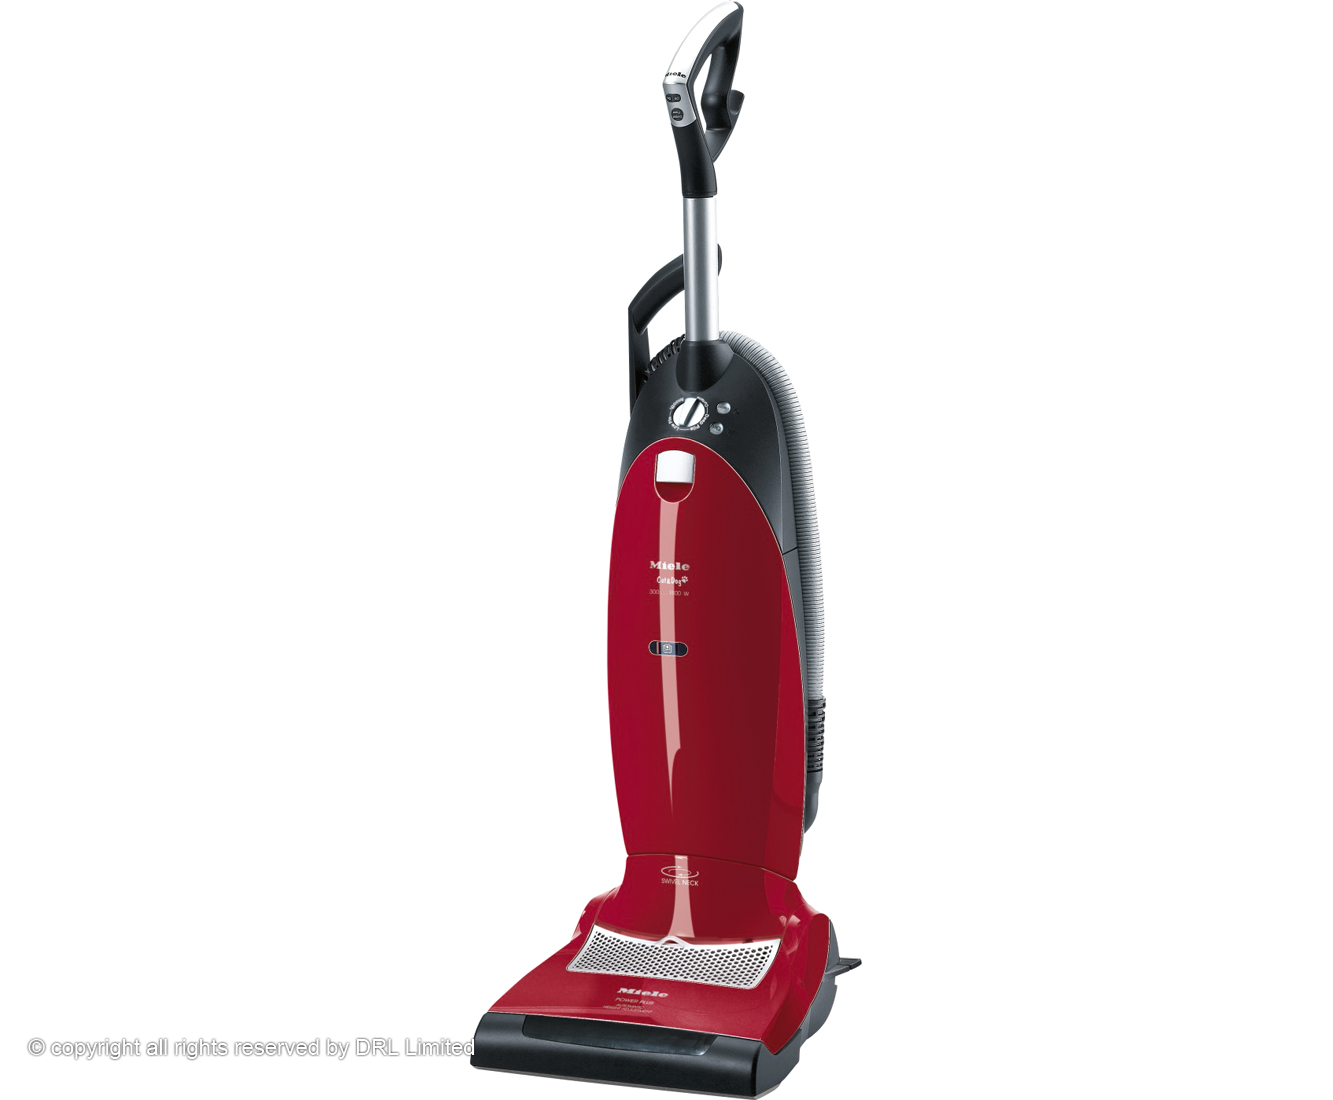 Miele Cat And Dog S7260 Bagged Upright Vacuum Cleaner with Pet Hair Removal